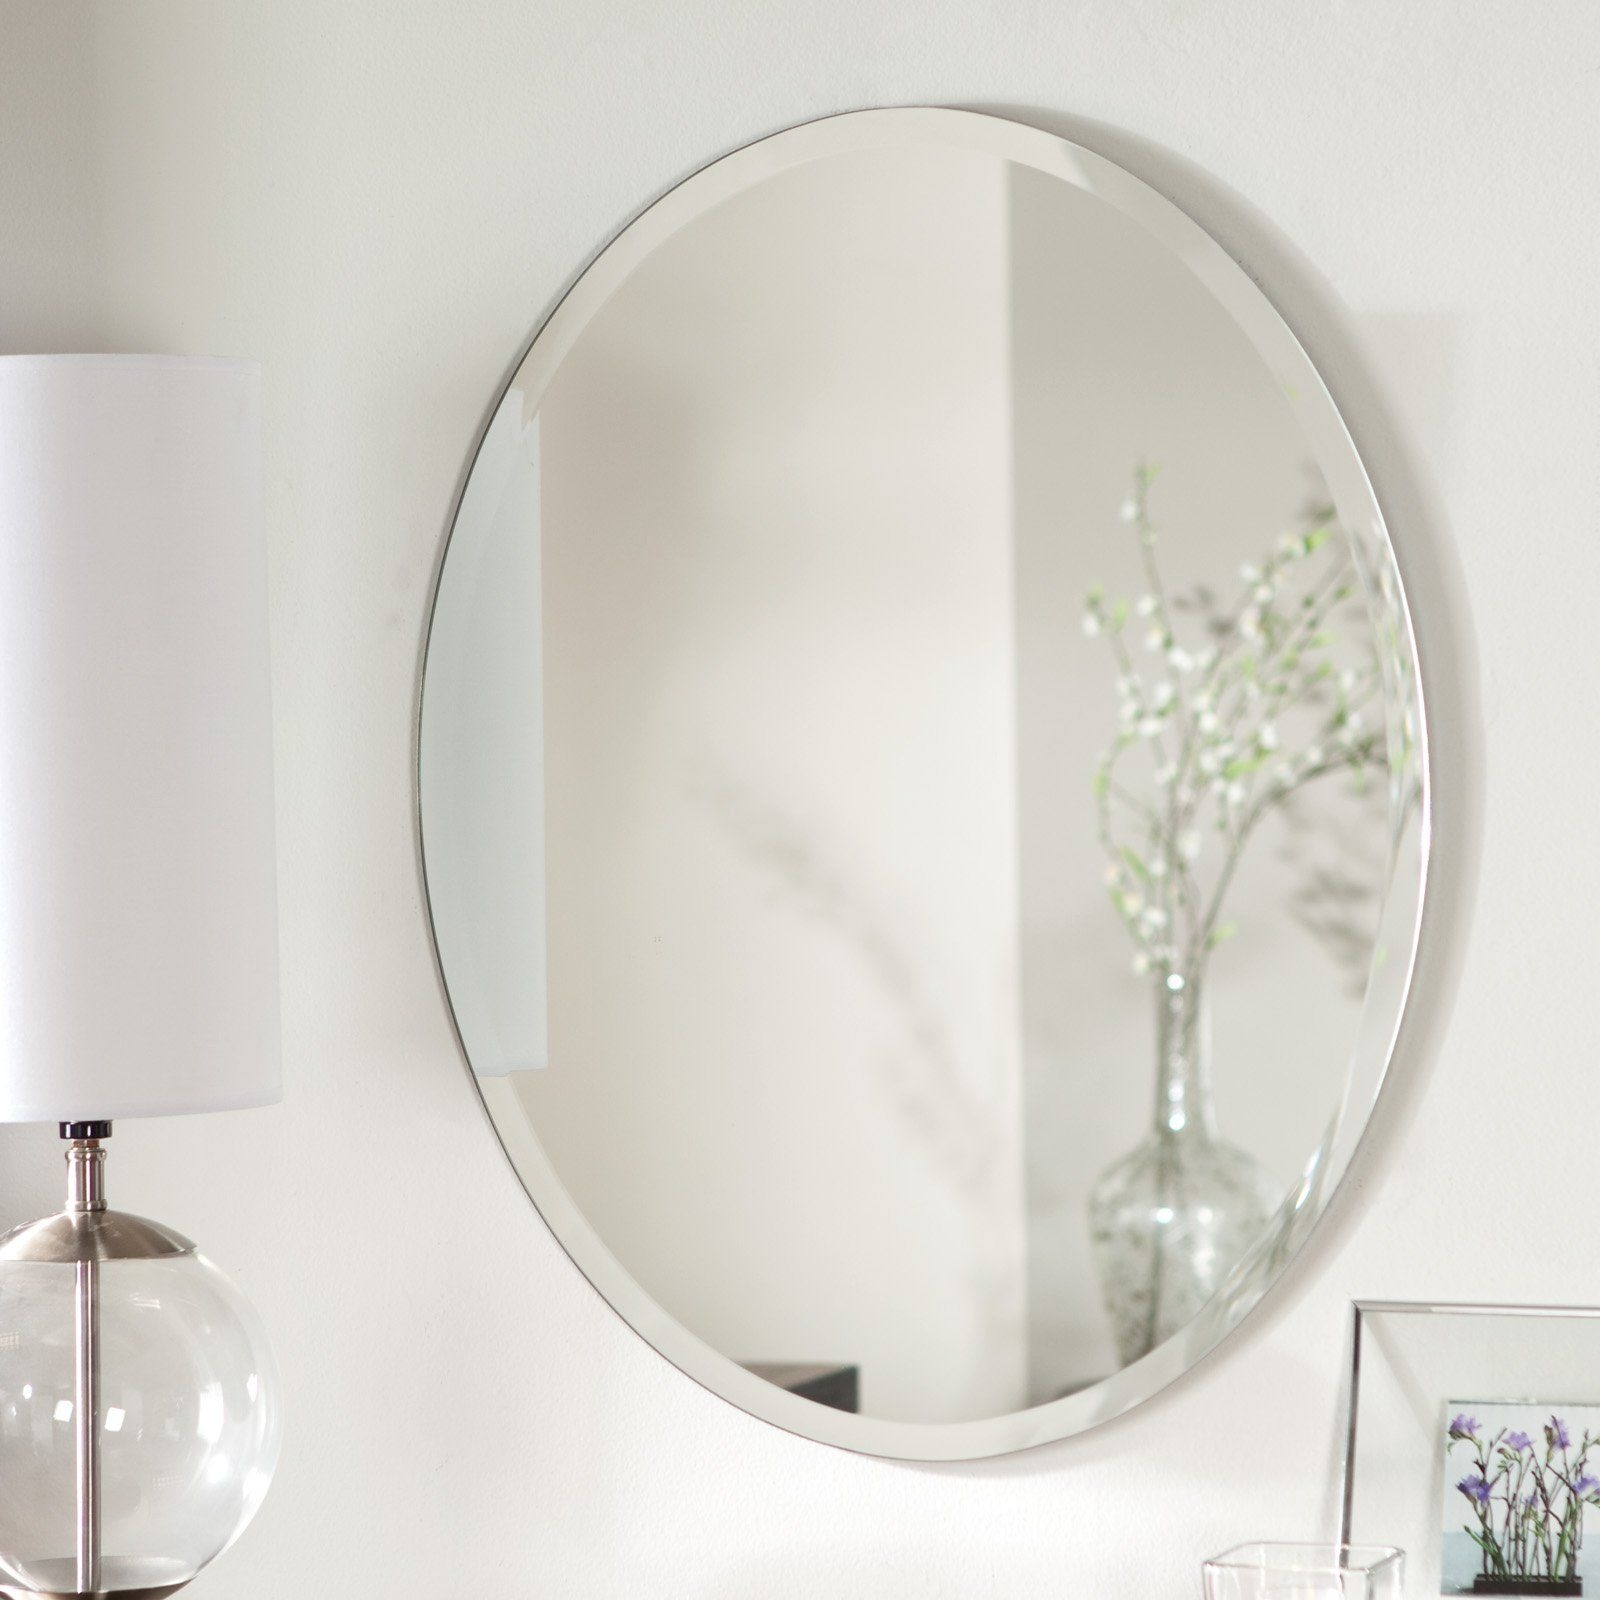 Dcor Wonderland Odelia Oval Bevel Frameless Wall Mirror 22w X In Oval Bevelled Mirror (View 8 of 15)